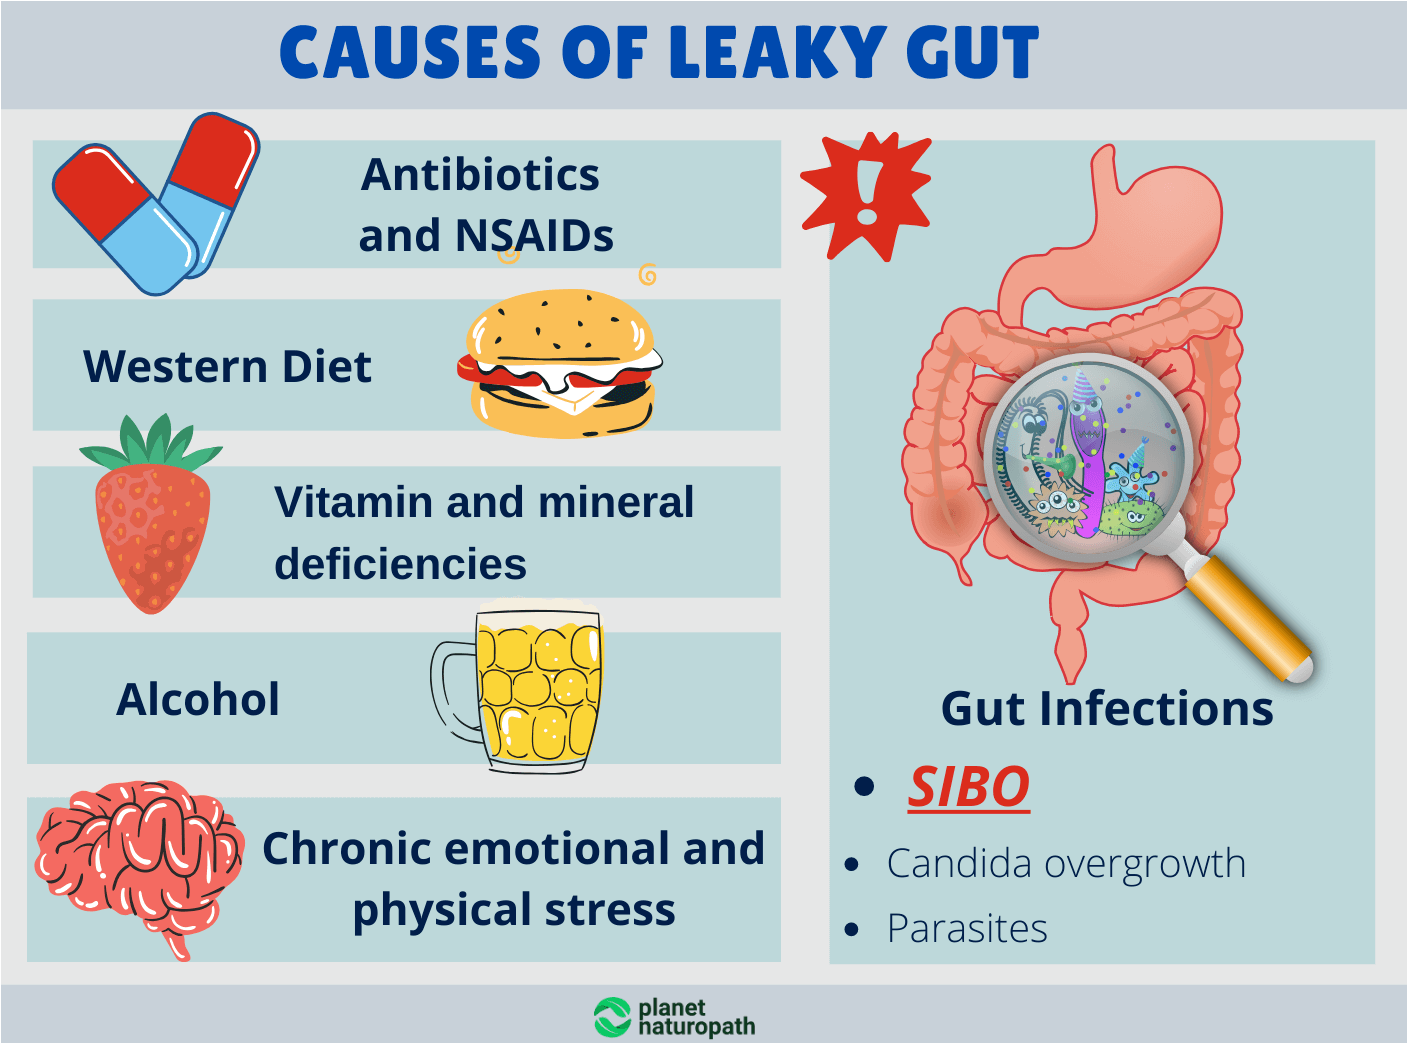 Causes-of-Leaky-Gut